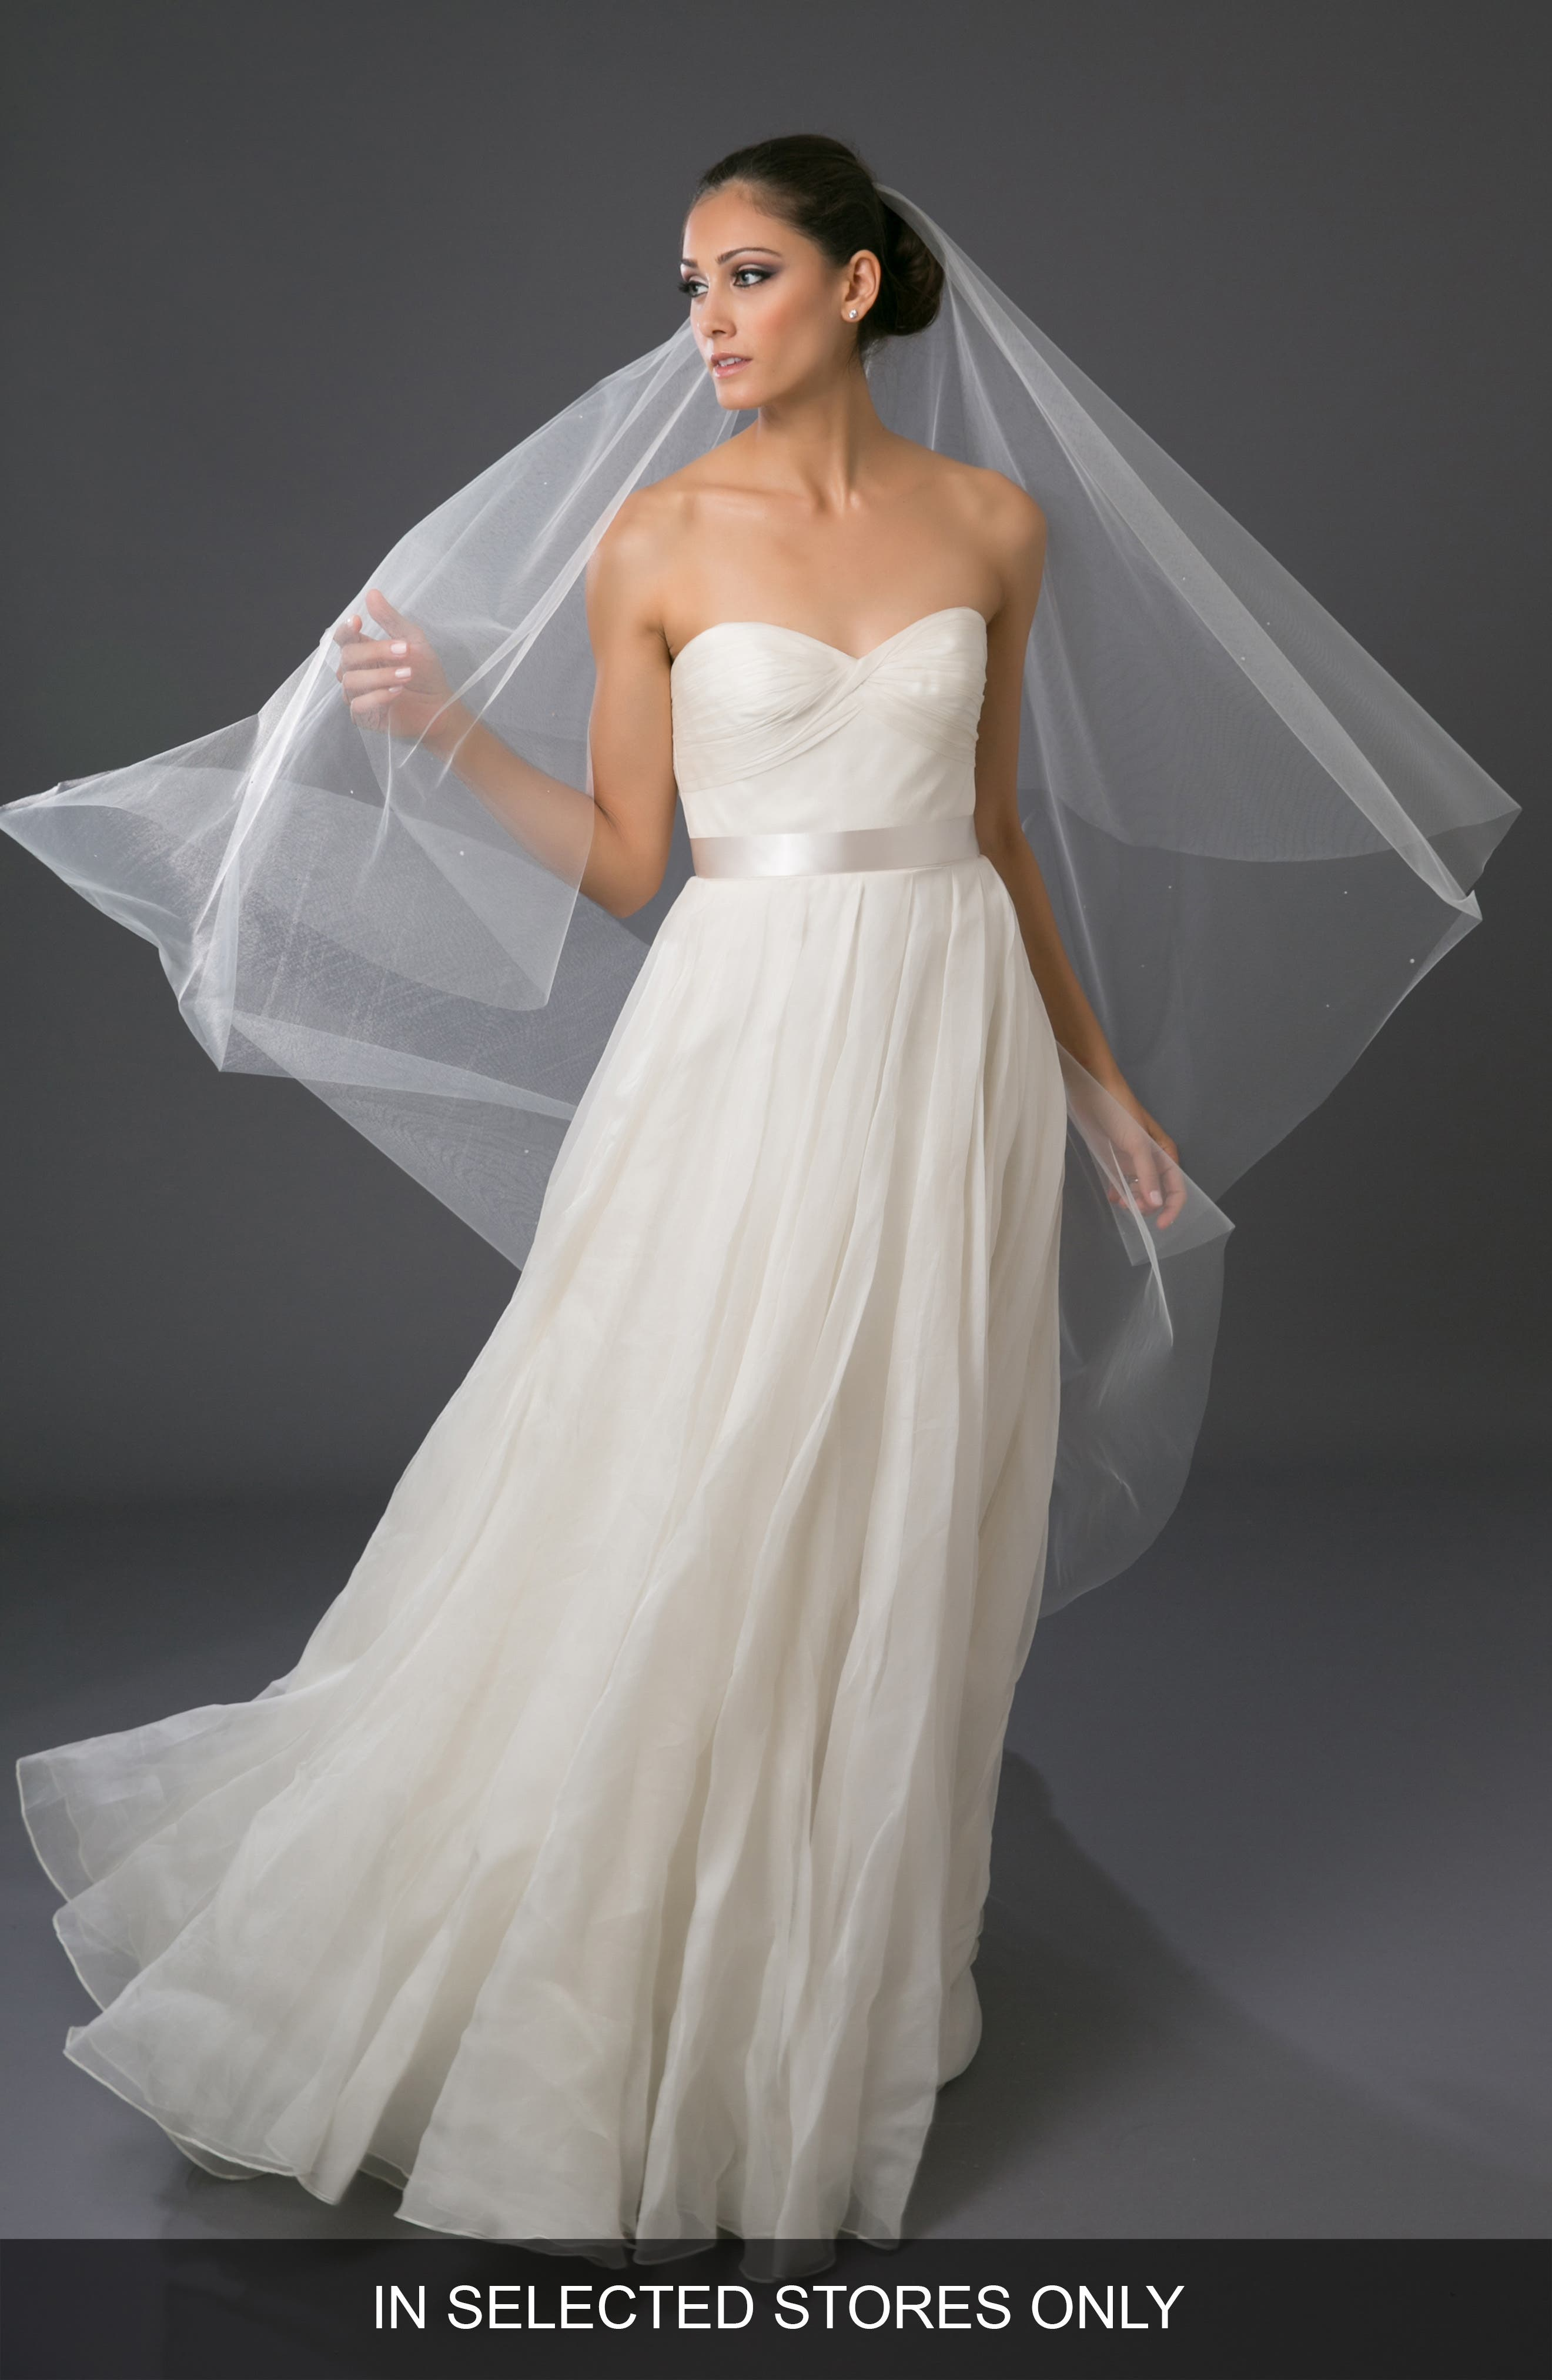 'Chakra' Circle Cut Waltz Length Veil,                             Alternate thumbnail 4, color,                             LIGHT IVORY